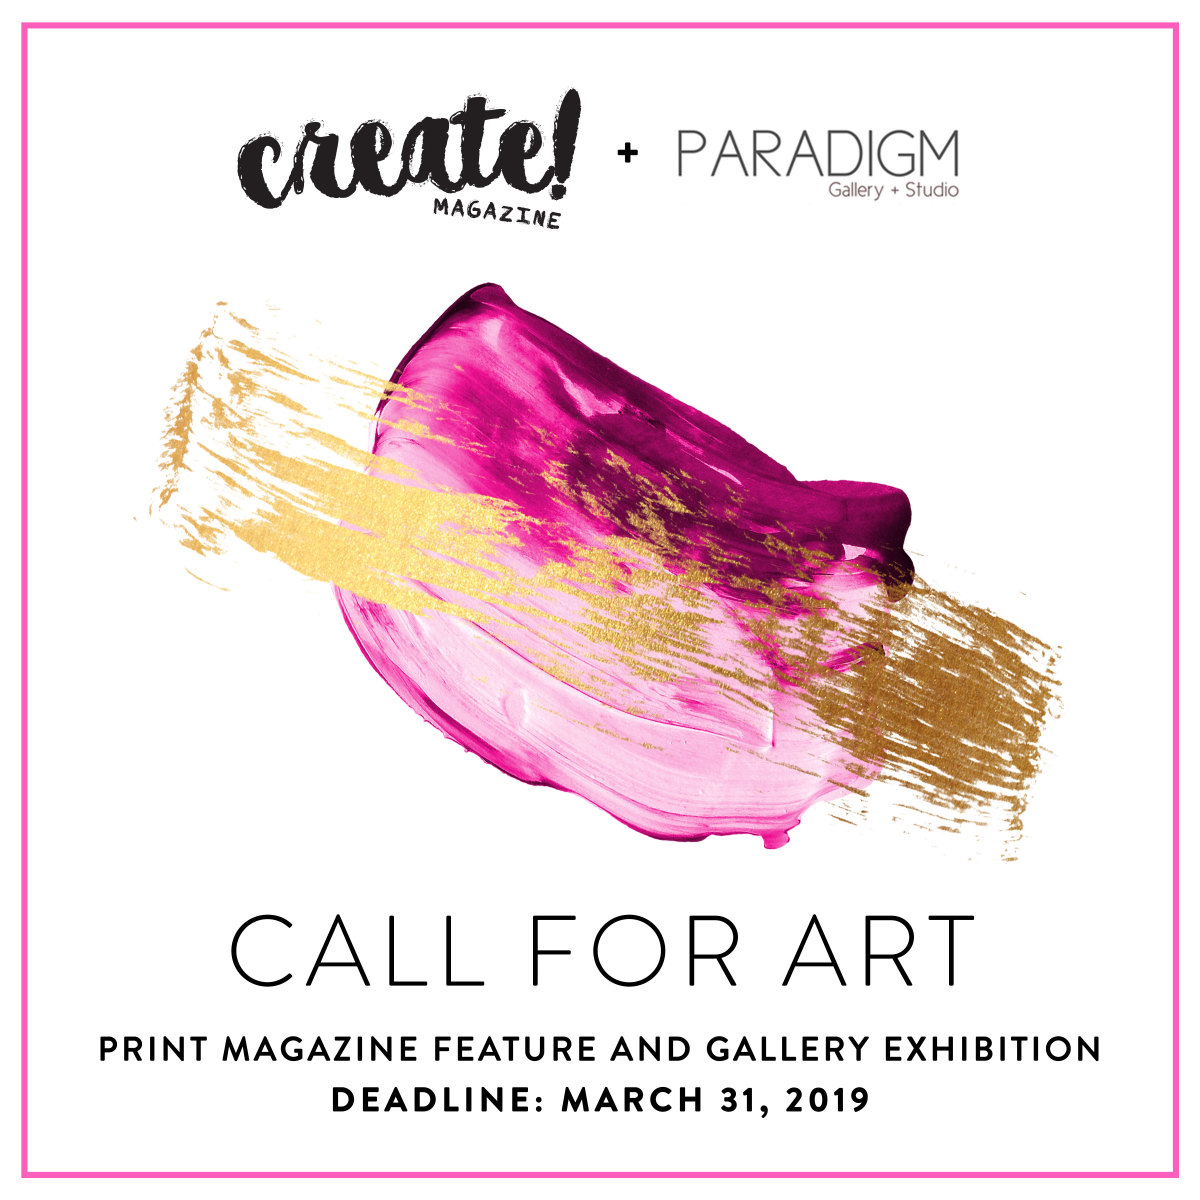 Create! Magazine Call for Art: Print Magazine Feature and Gallery Exhibition